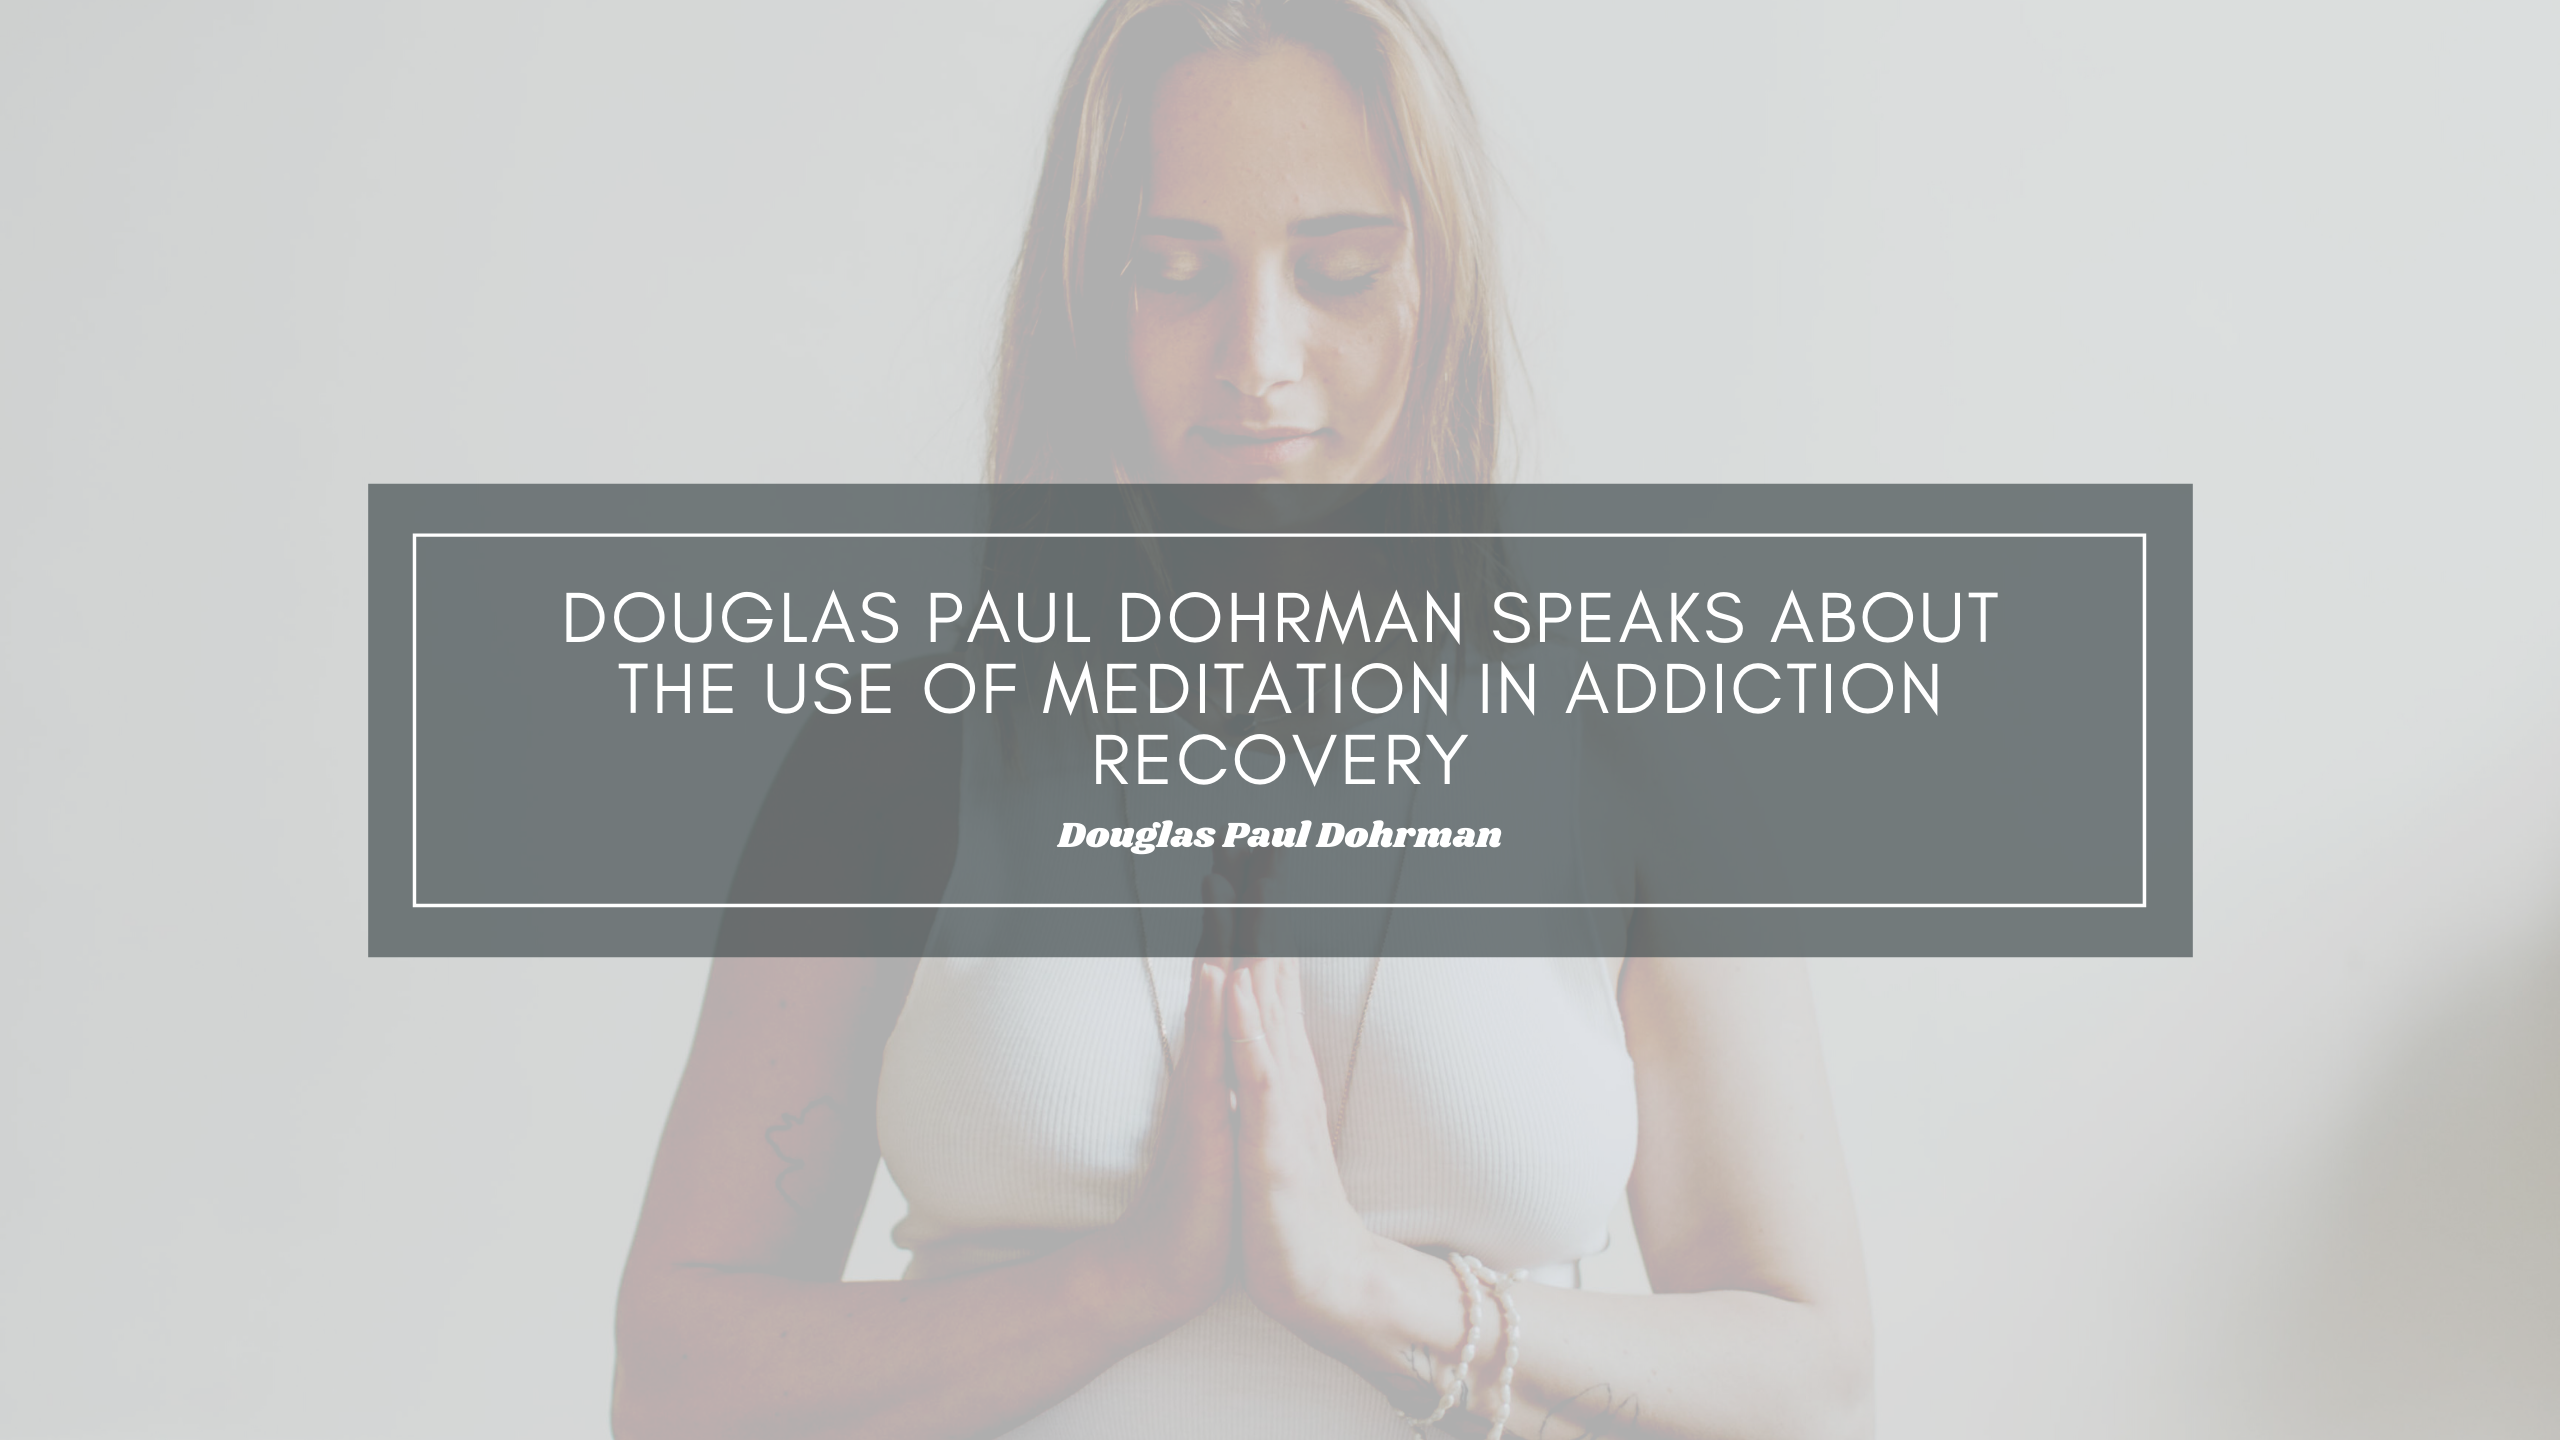 Douglas Paul Dohrman Speaks About the use of Meditation in Addiction Recovery